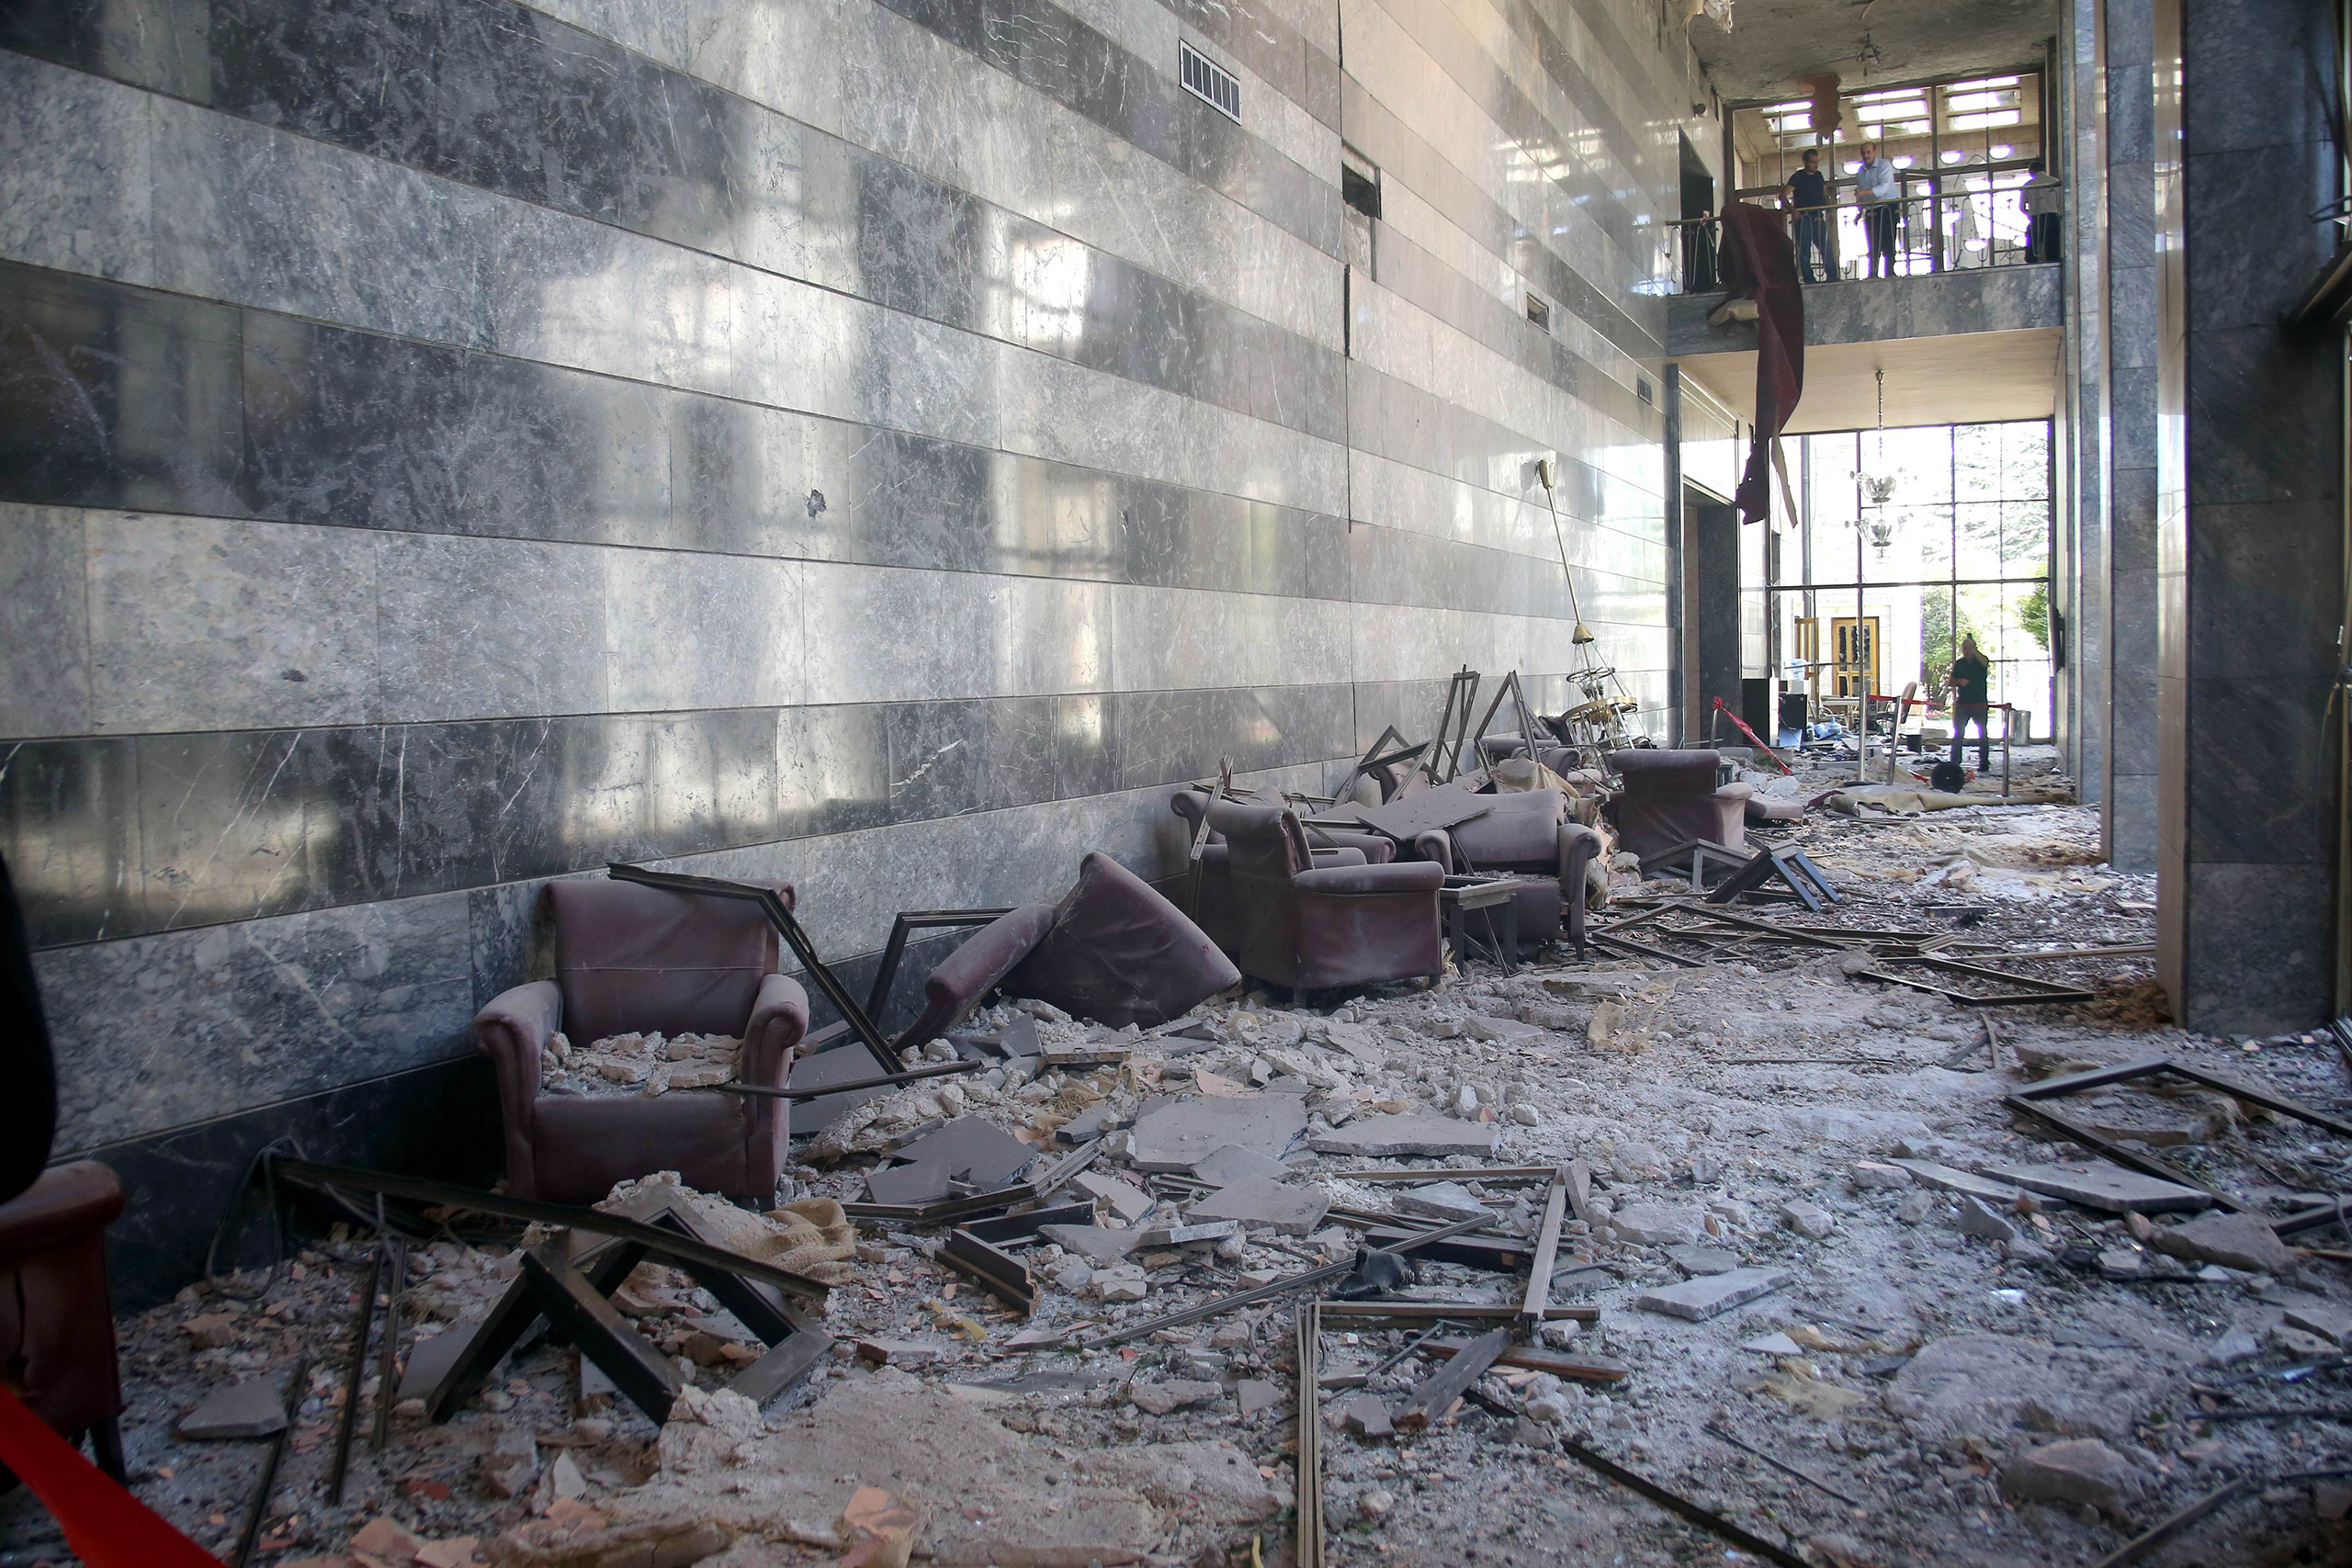 Damage inside the Grand National Assembly after an airstrike during the failed military coup attempt in Ankara, Turkey, on July 16, 2016.